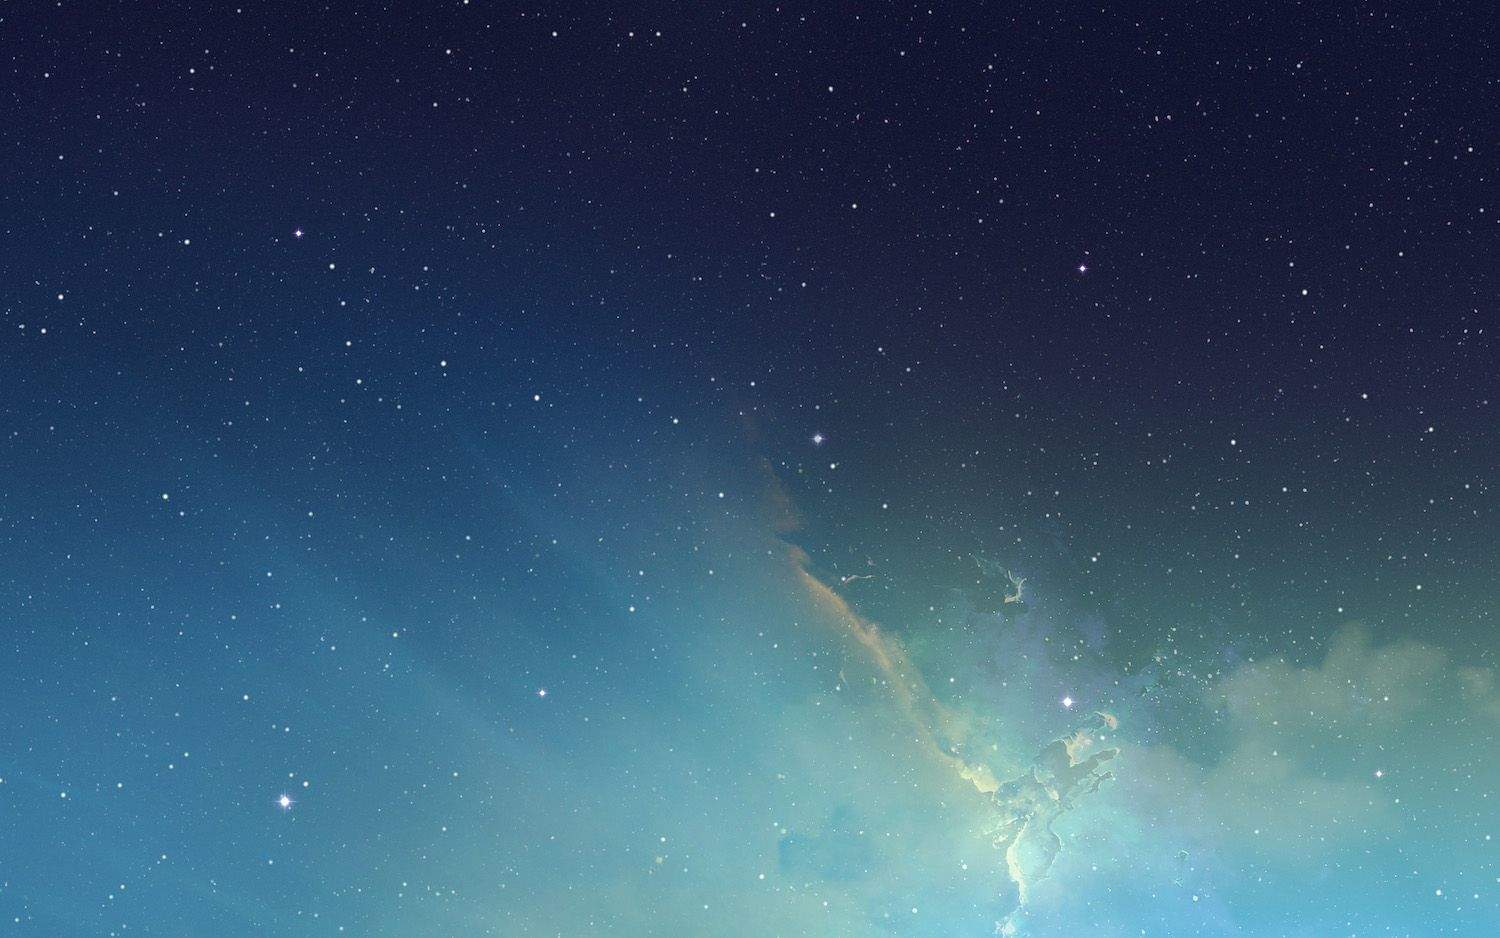 Ios 11 Wallpapers Iphone X Get Ios 7 S Gorgeous Nebula Wallpaper For Your Mac Cult